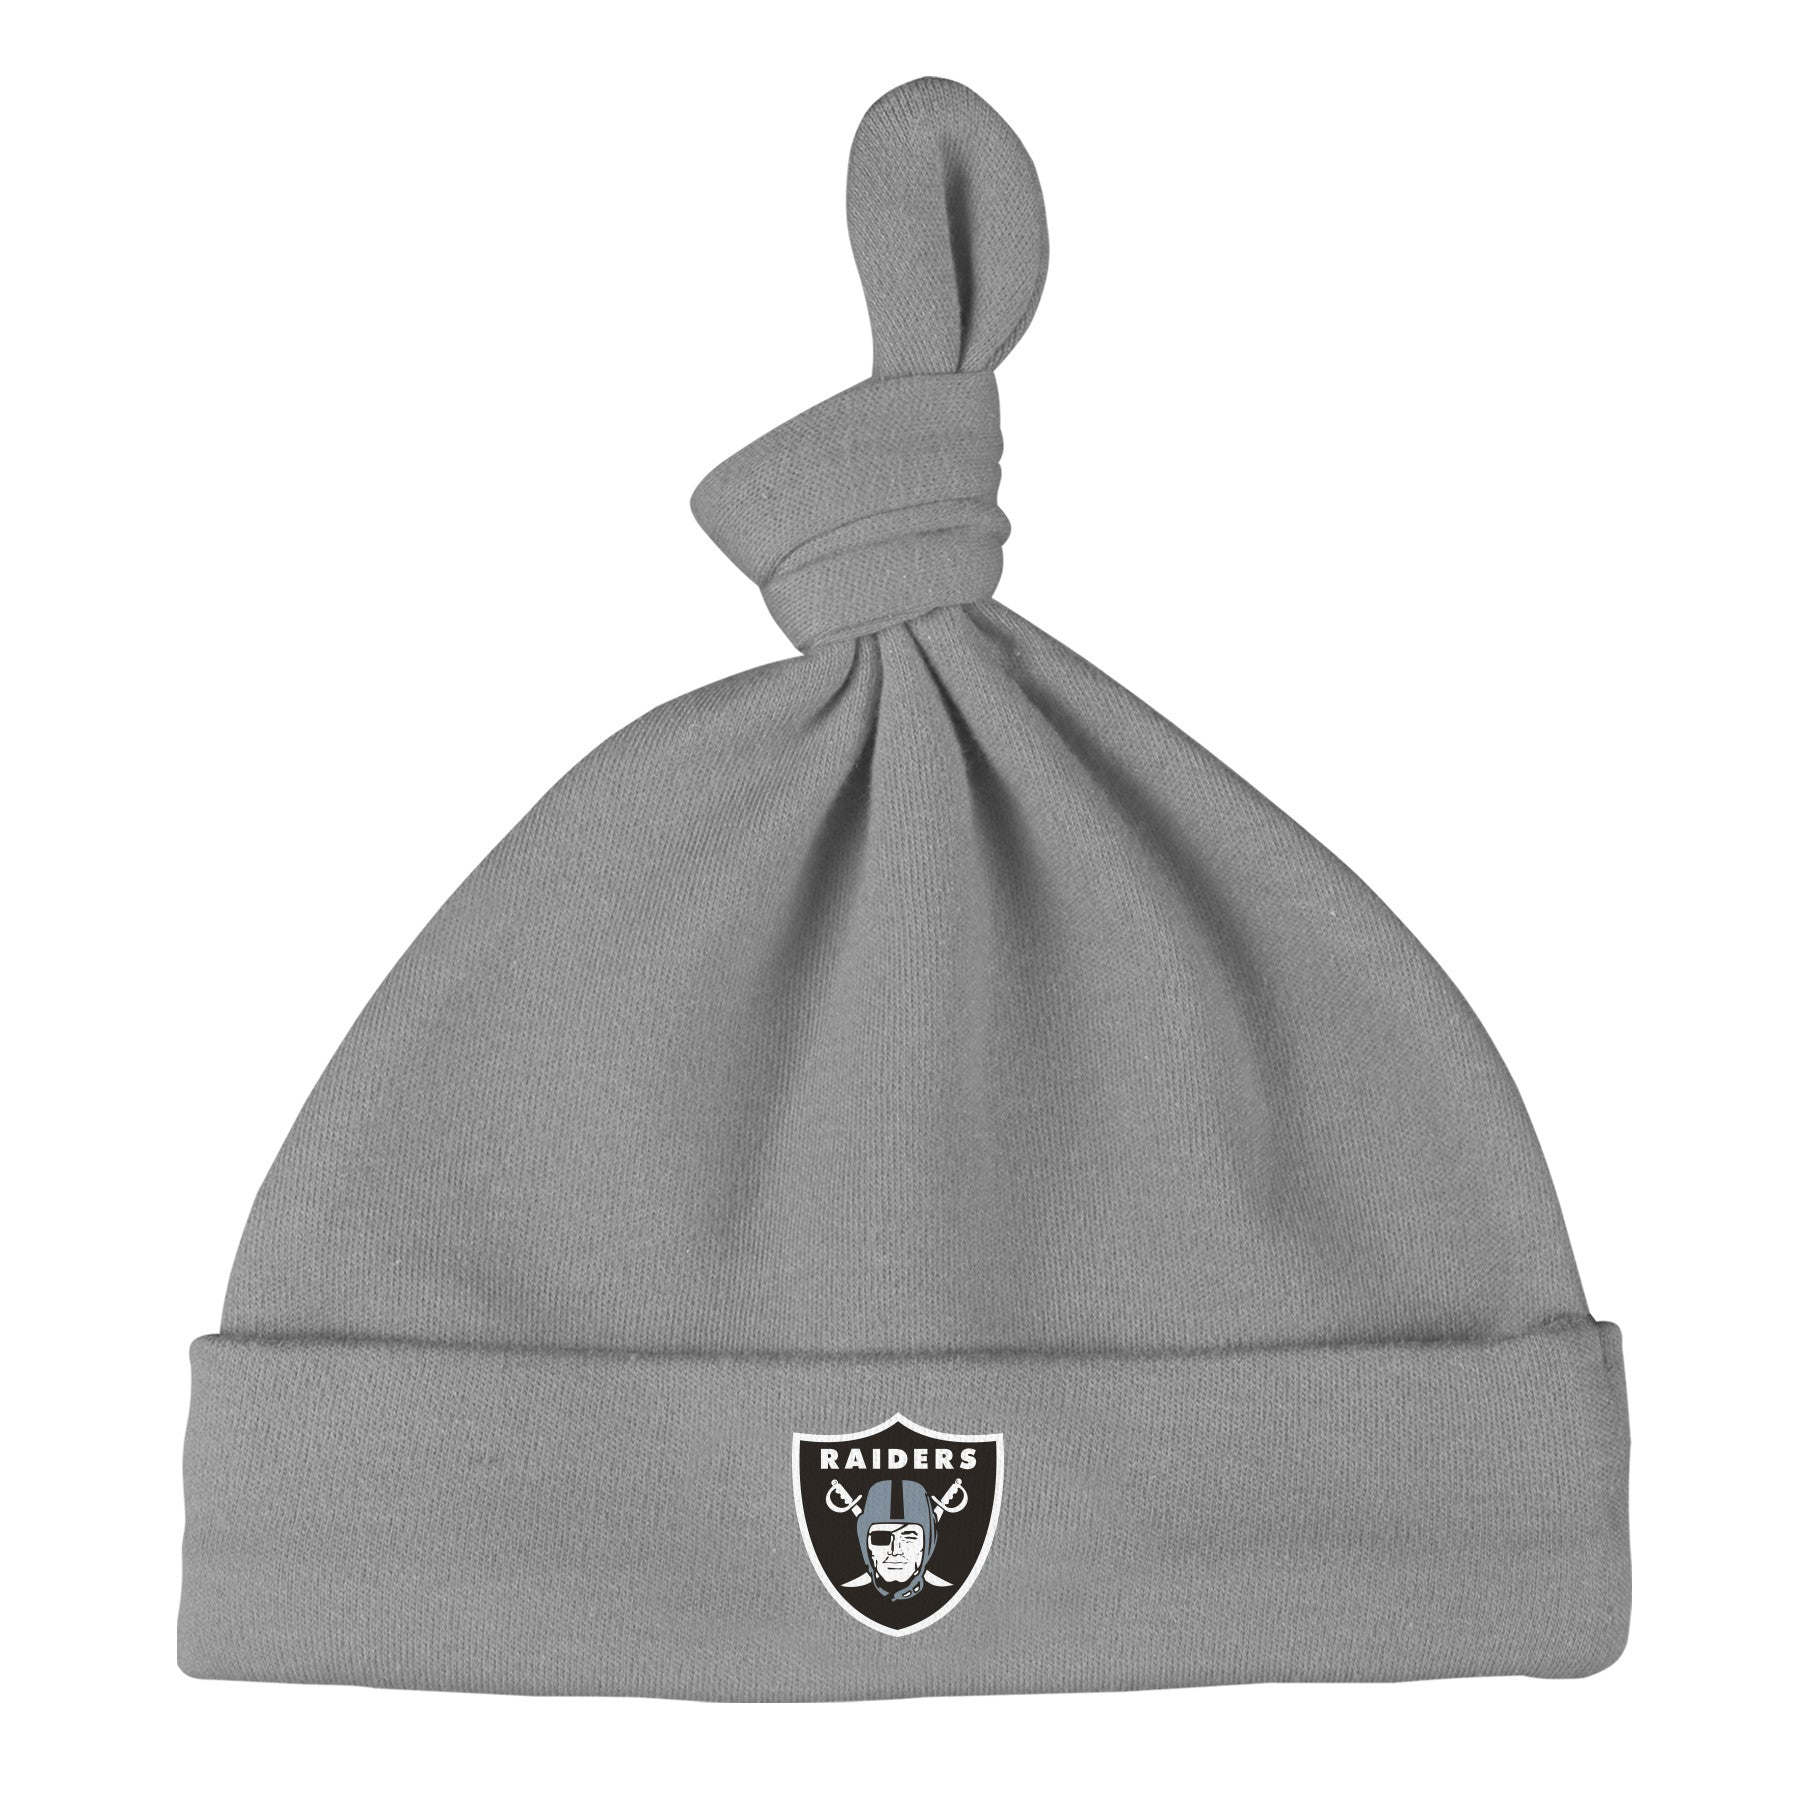 Raiders Newborn Gown, Cap, and Booties – babyfans